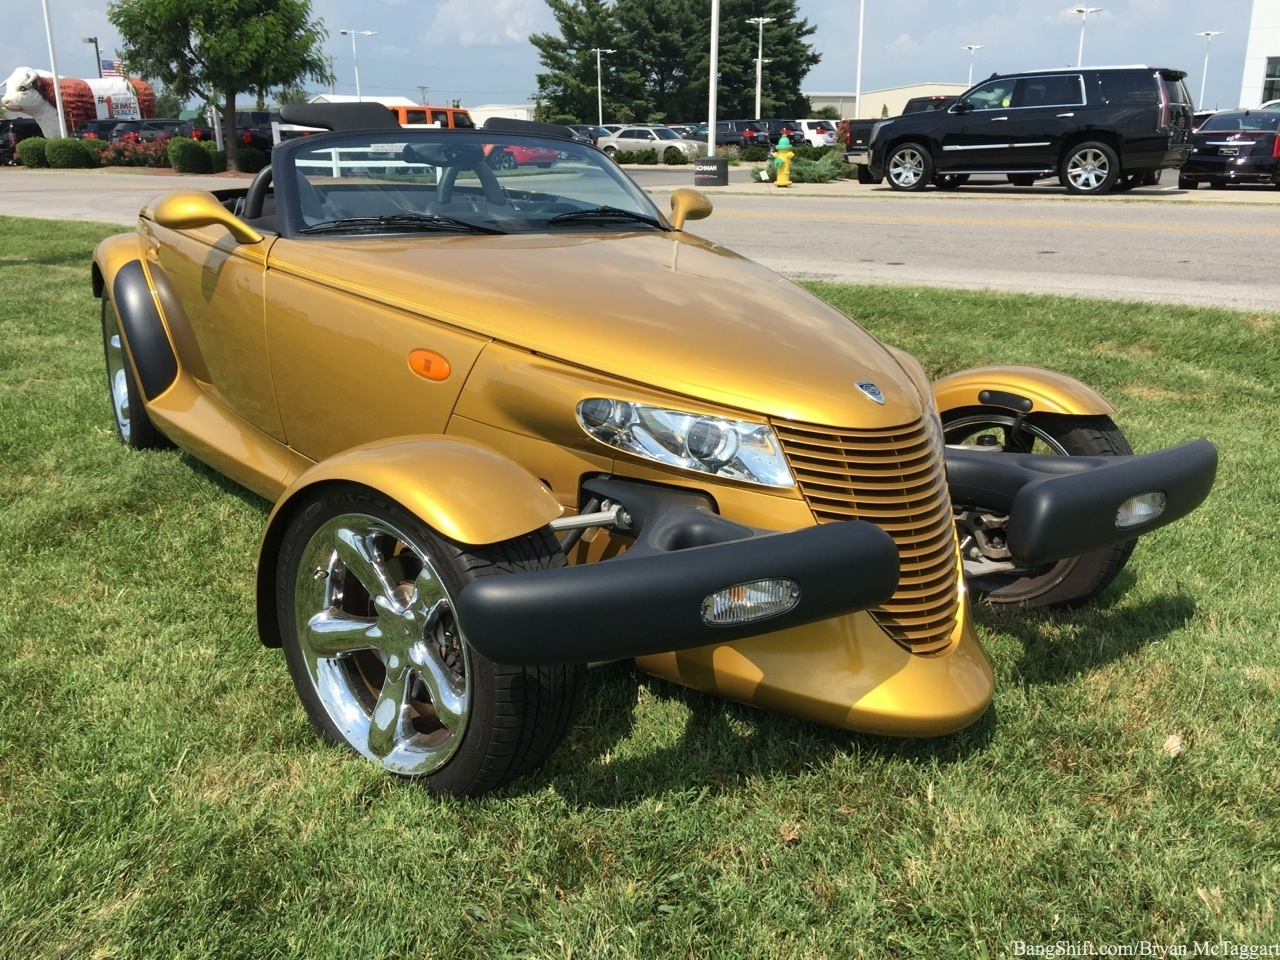 Random Car Review: The Chrysler/Plymouth Prowler – From Concept To Forgotten In Short Order